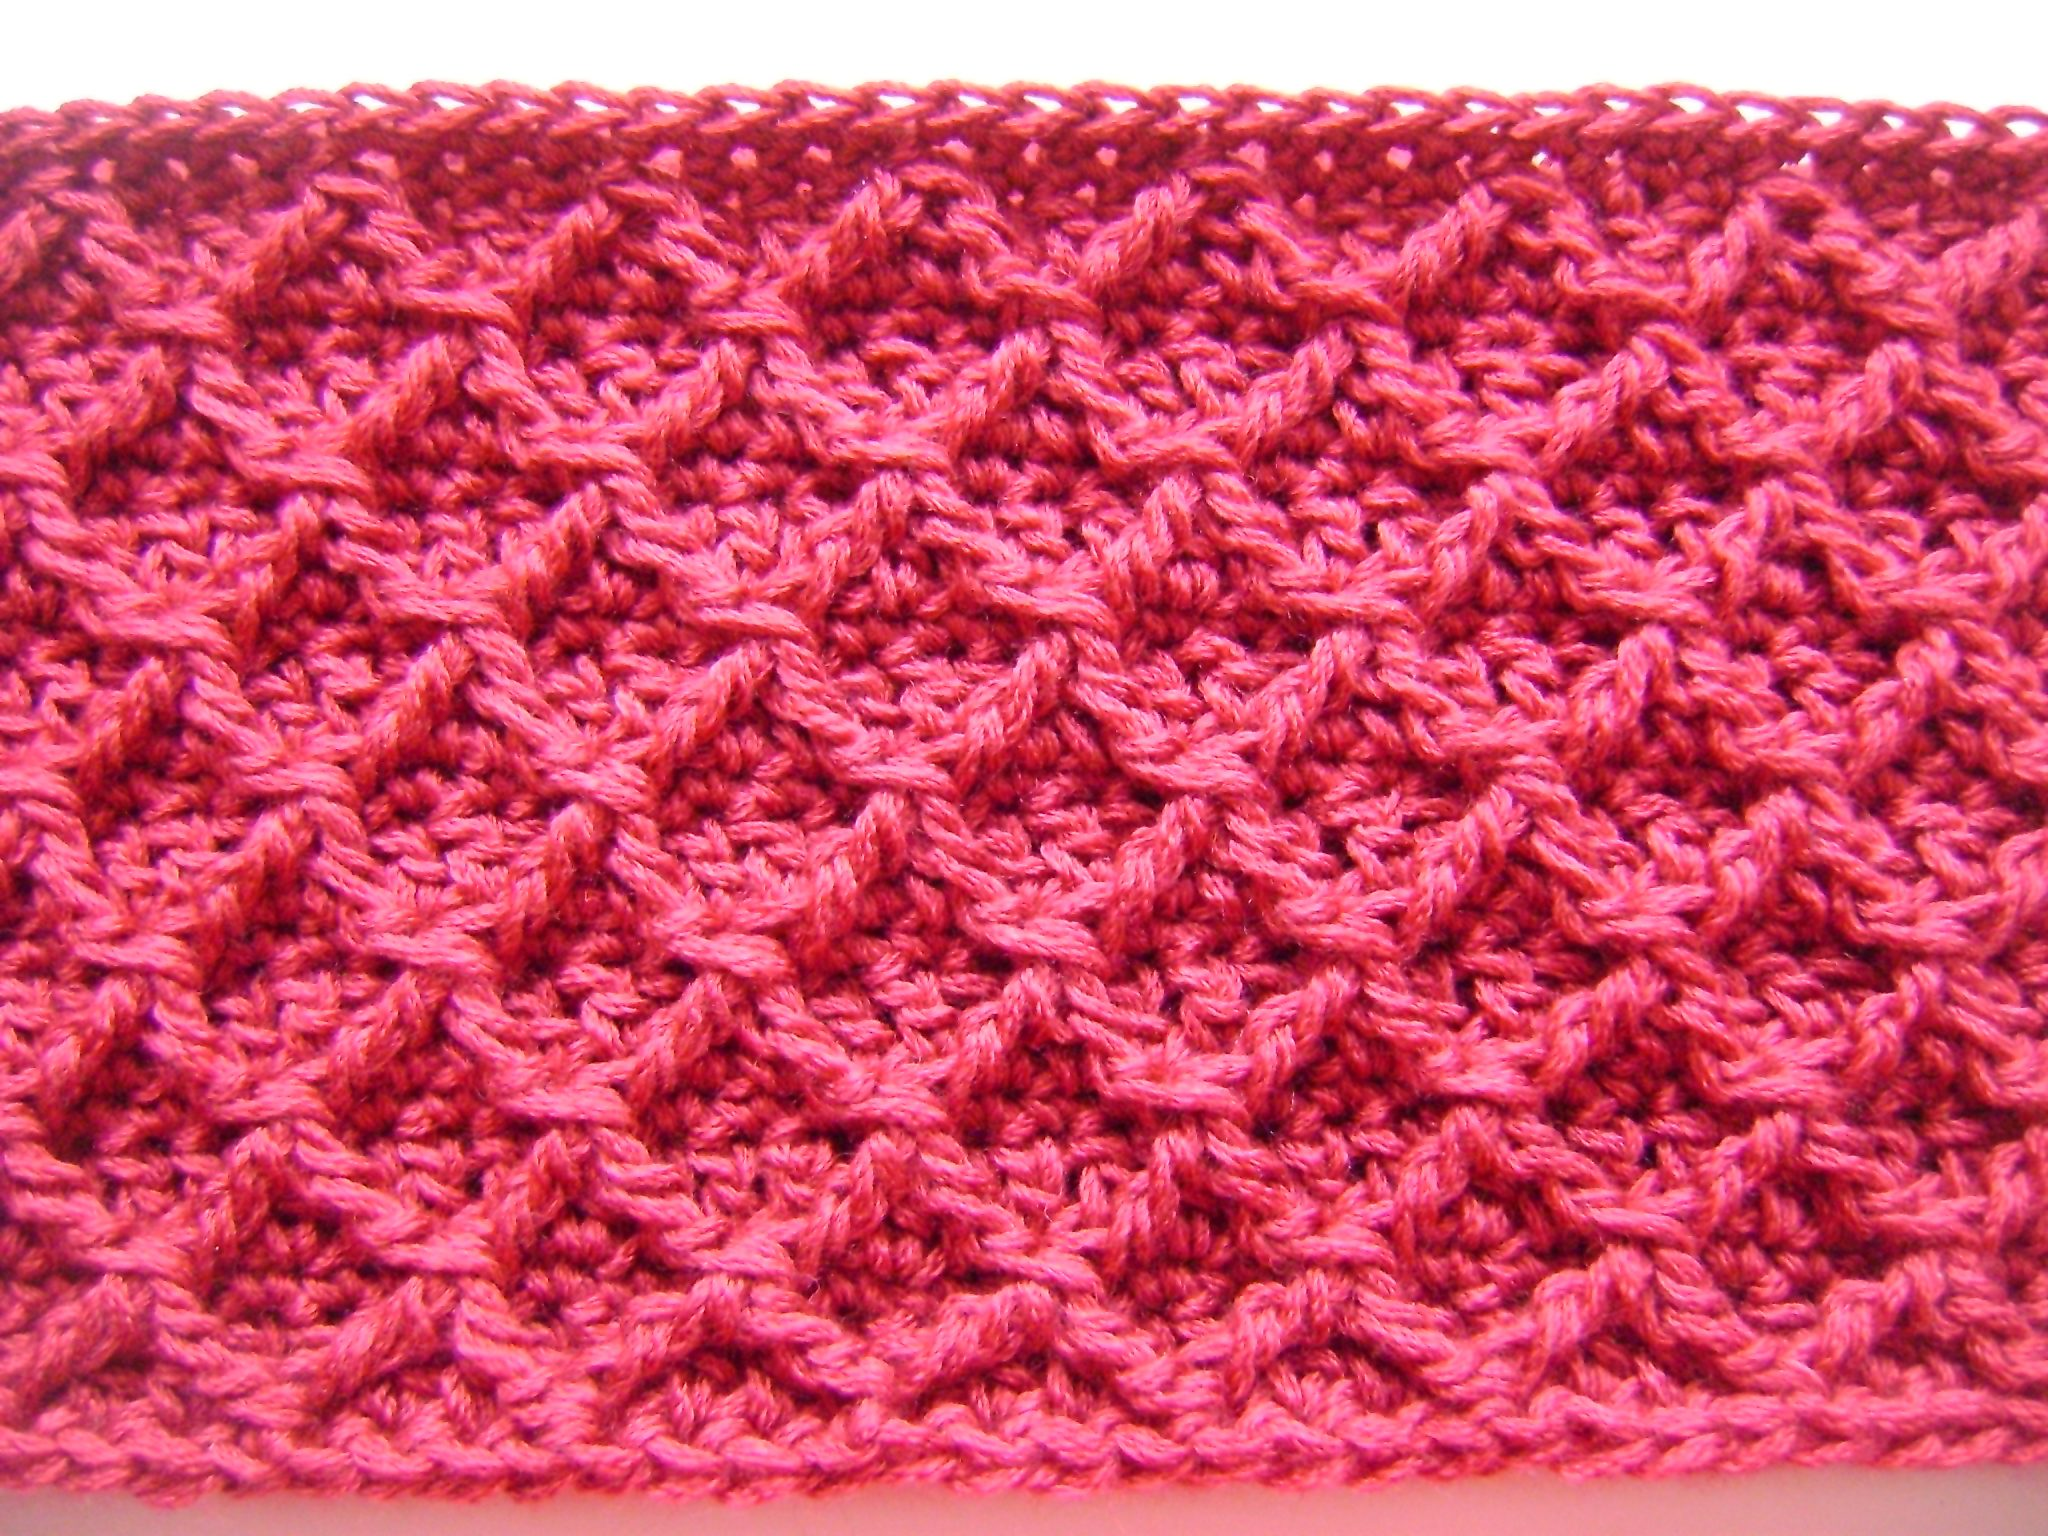 Diamond Crochet Cowl (closeup) on www.mooglyblog.com